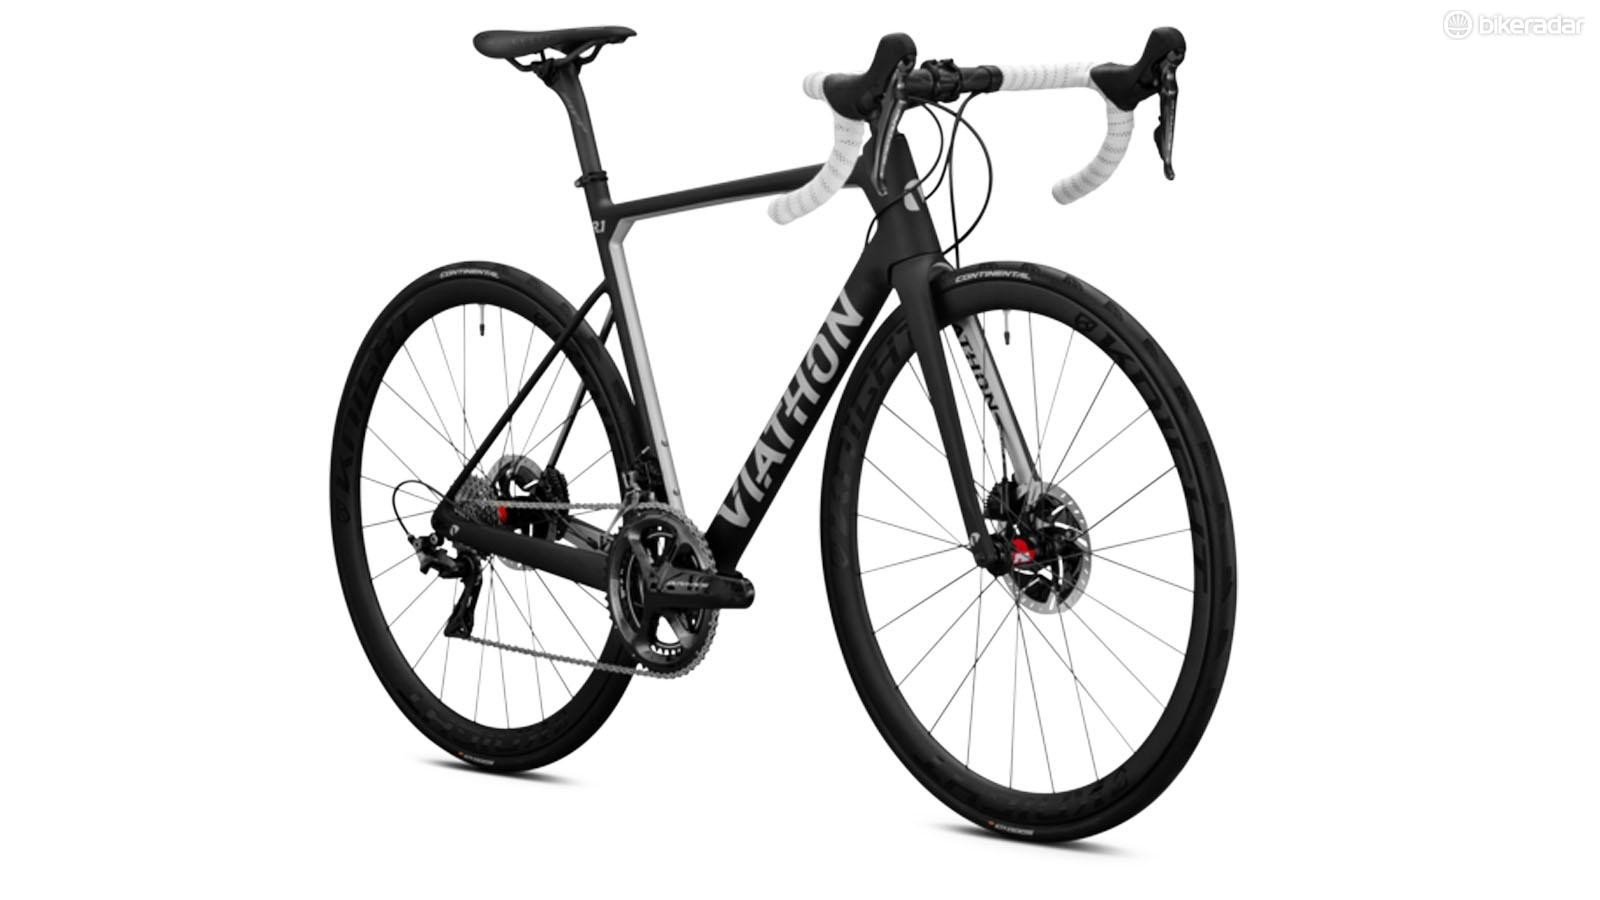 Dura-Ace mechanical, Zipp finishing kit and Knight carbon clinchers for under $6k